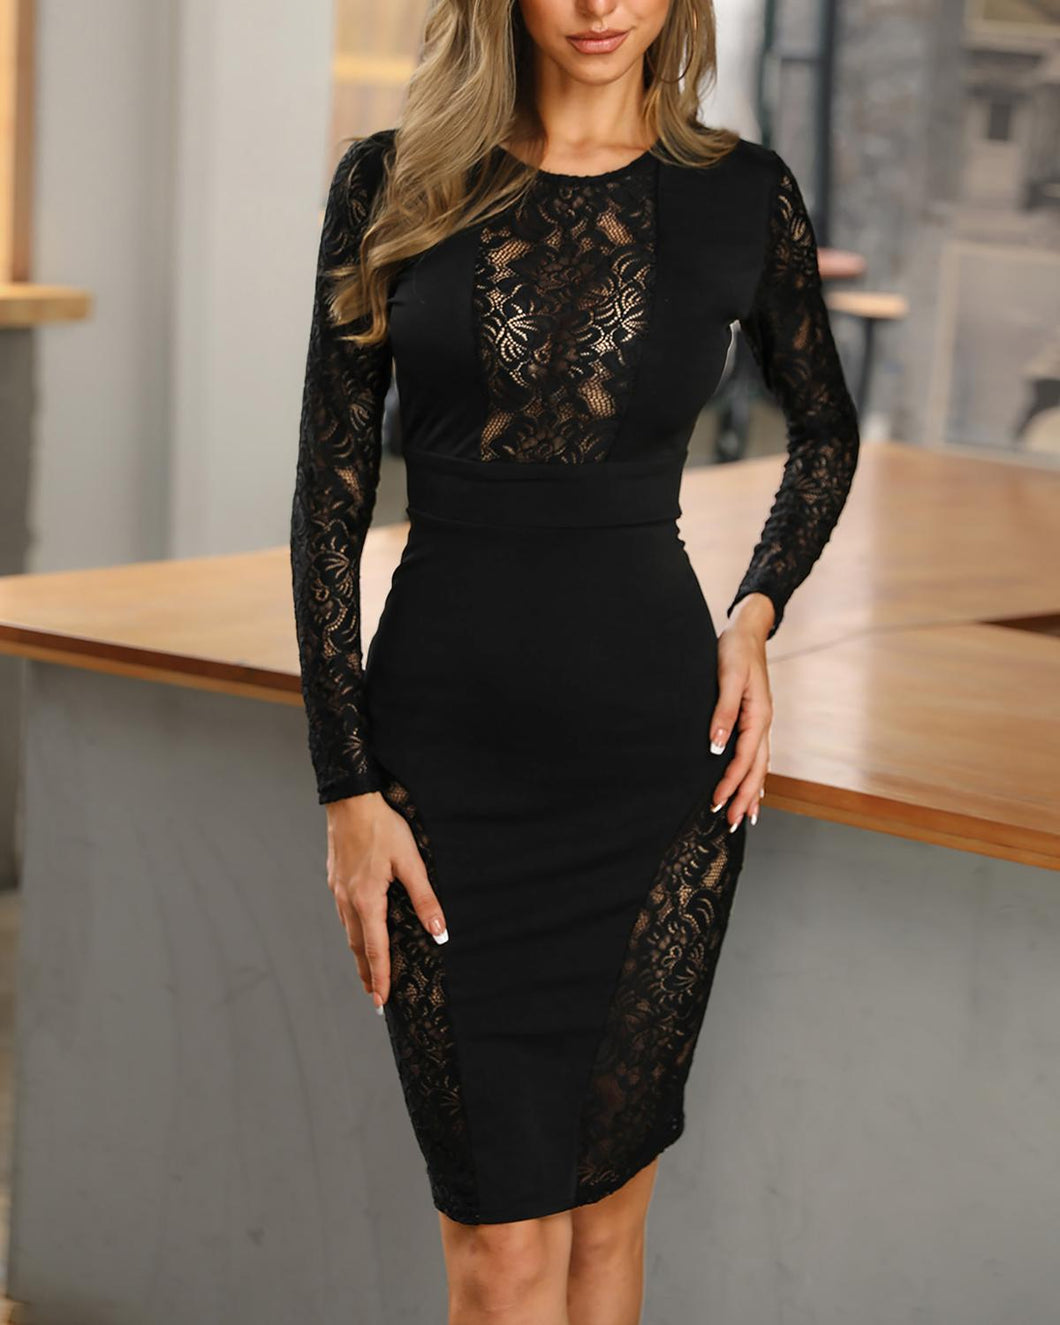 DRESS Elegant Fashion Women Black Lace Insert Midi Dress - EK CHIC